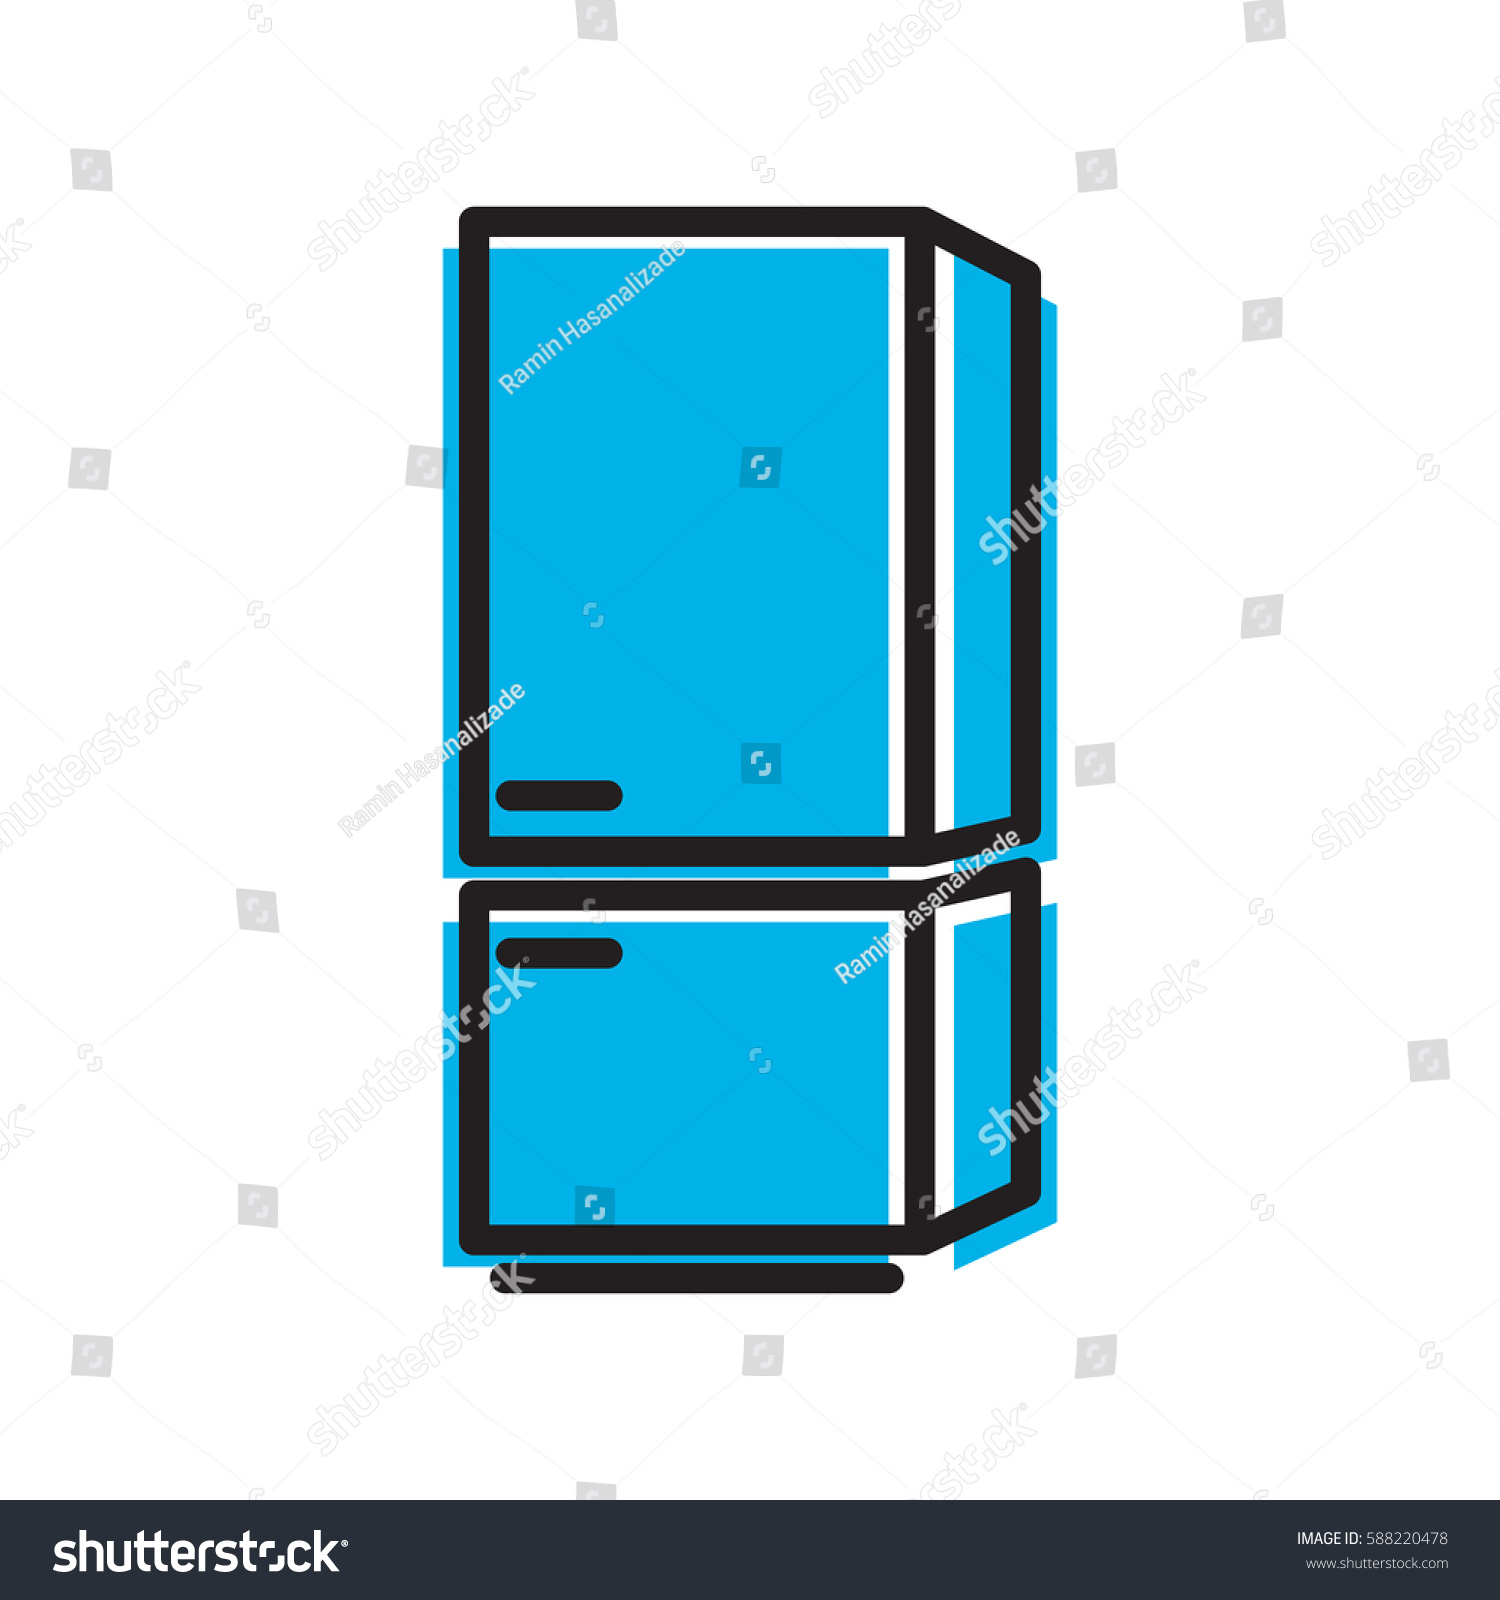 Refrigerator Icon Simple Kitchen Cooking Illustration Stock Vector ...